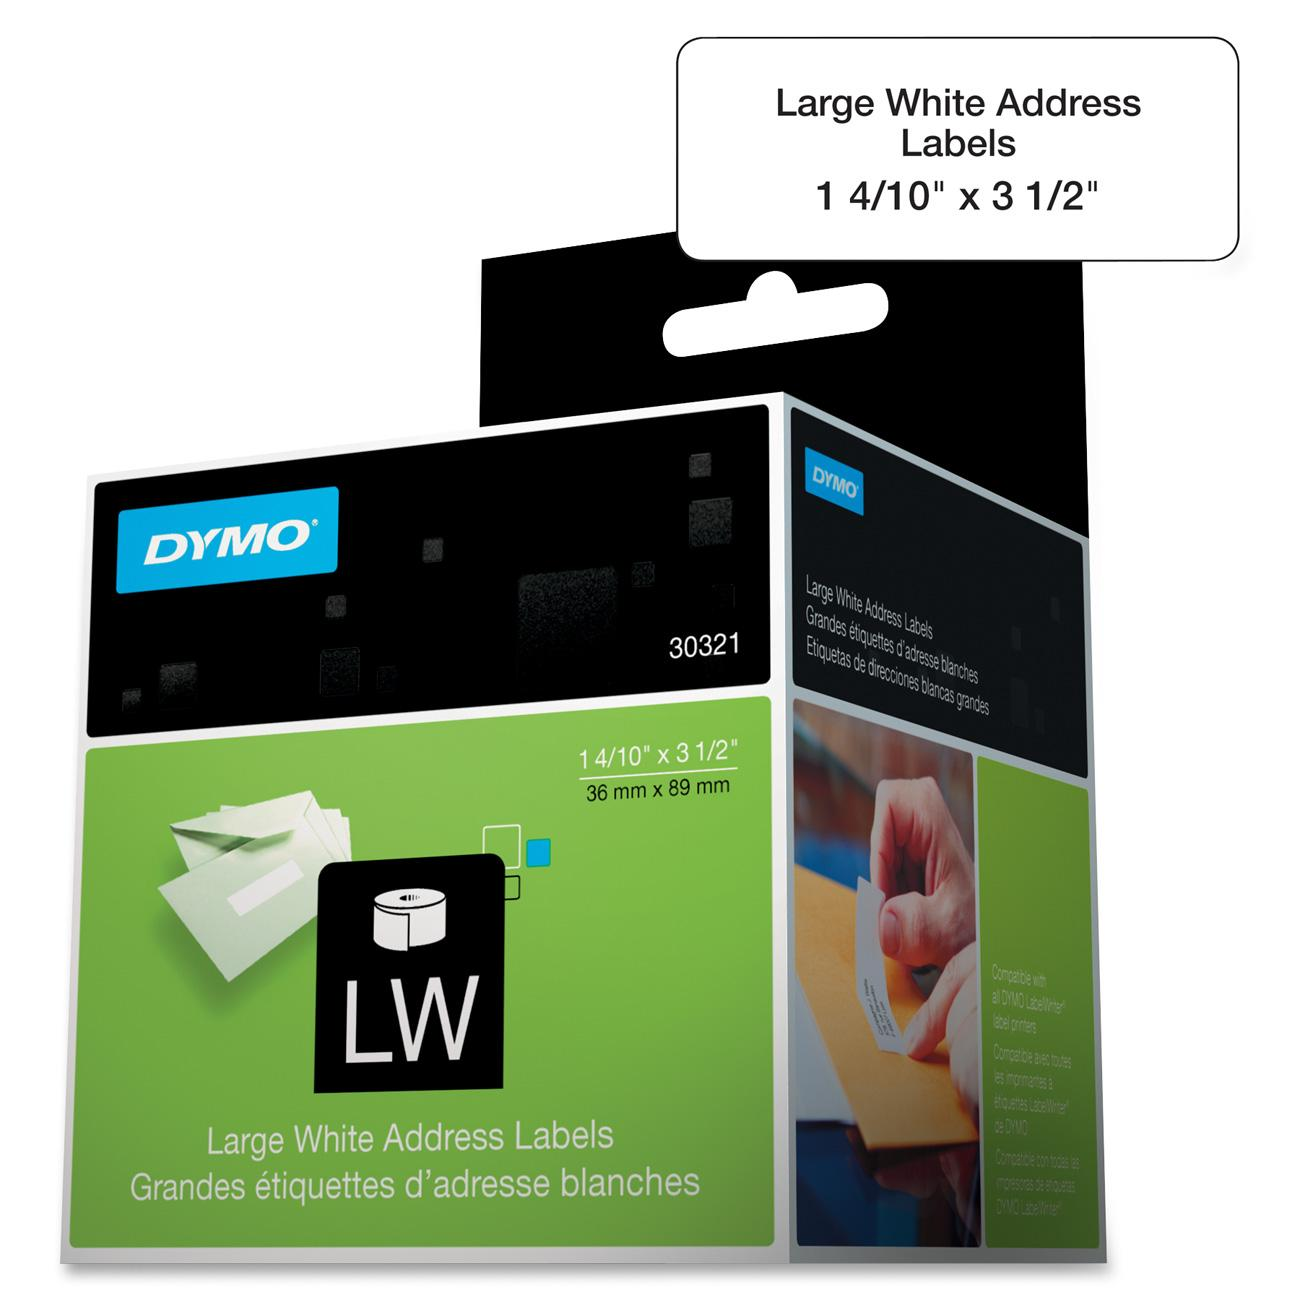 DYMO LW Large Mailing Address Labels for LabelWriter Label Printers, White, 1-4/10'' x 3-1/2'', Large, 2 rolls of 260